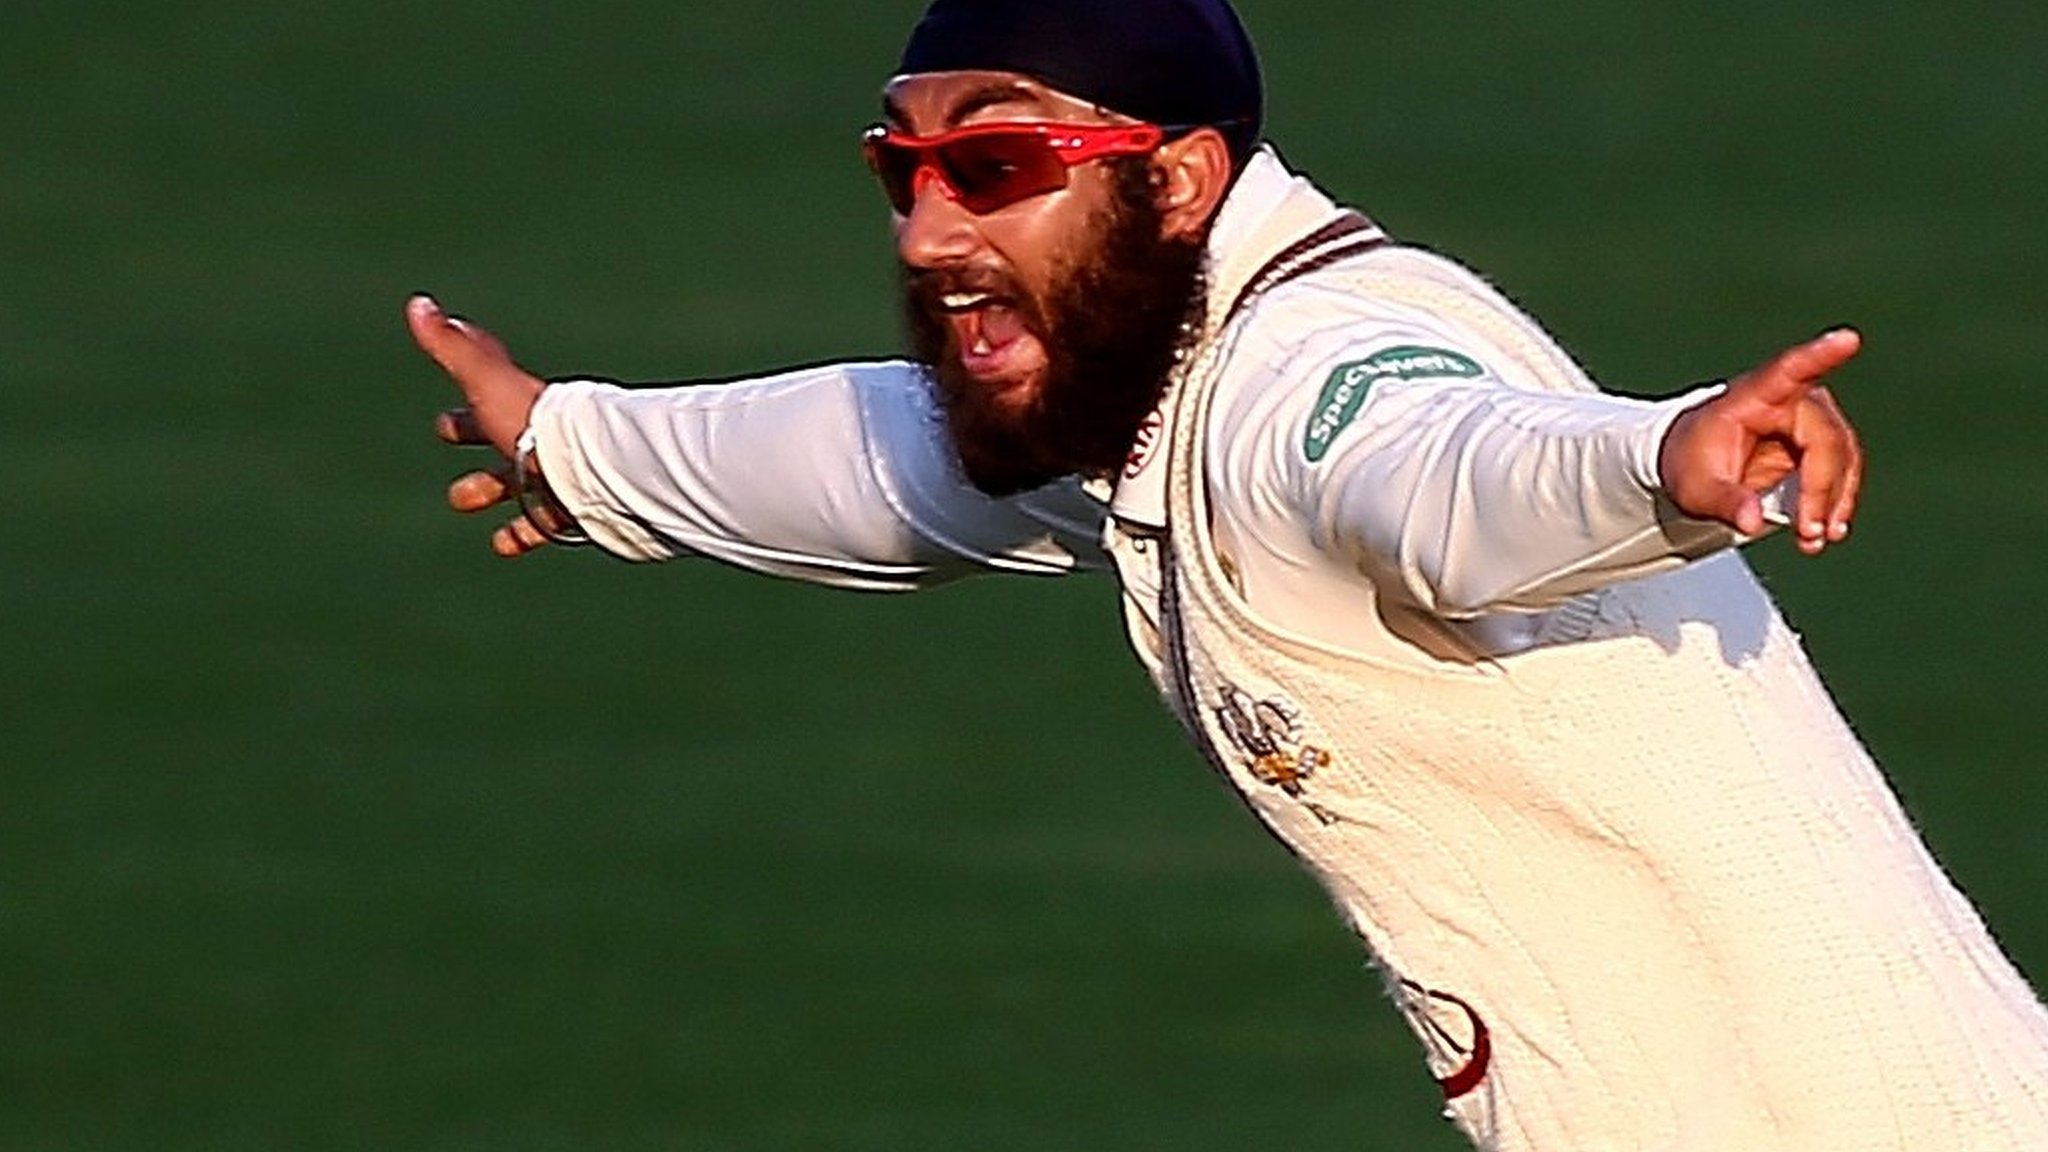 County Championship: Surrey's Amar Virdi takes three wickets before Lancs rally